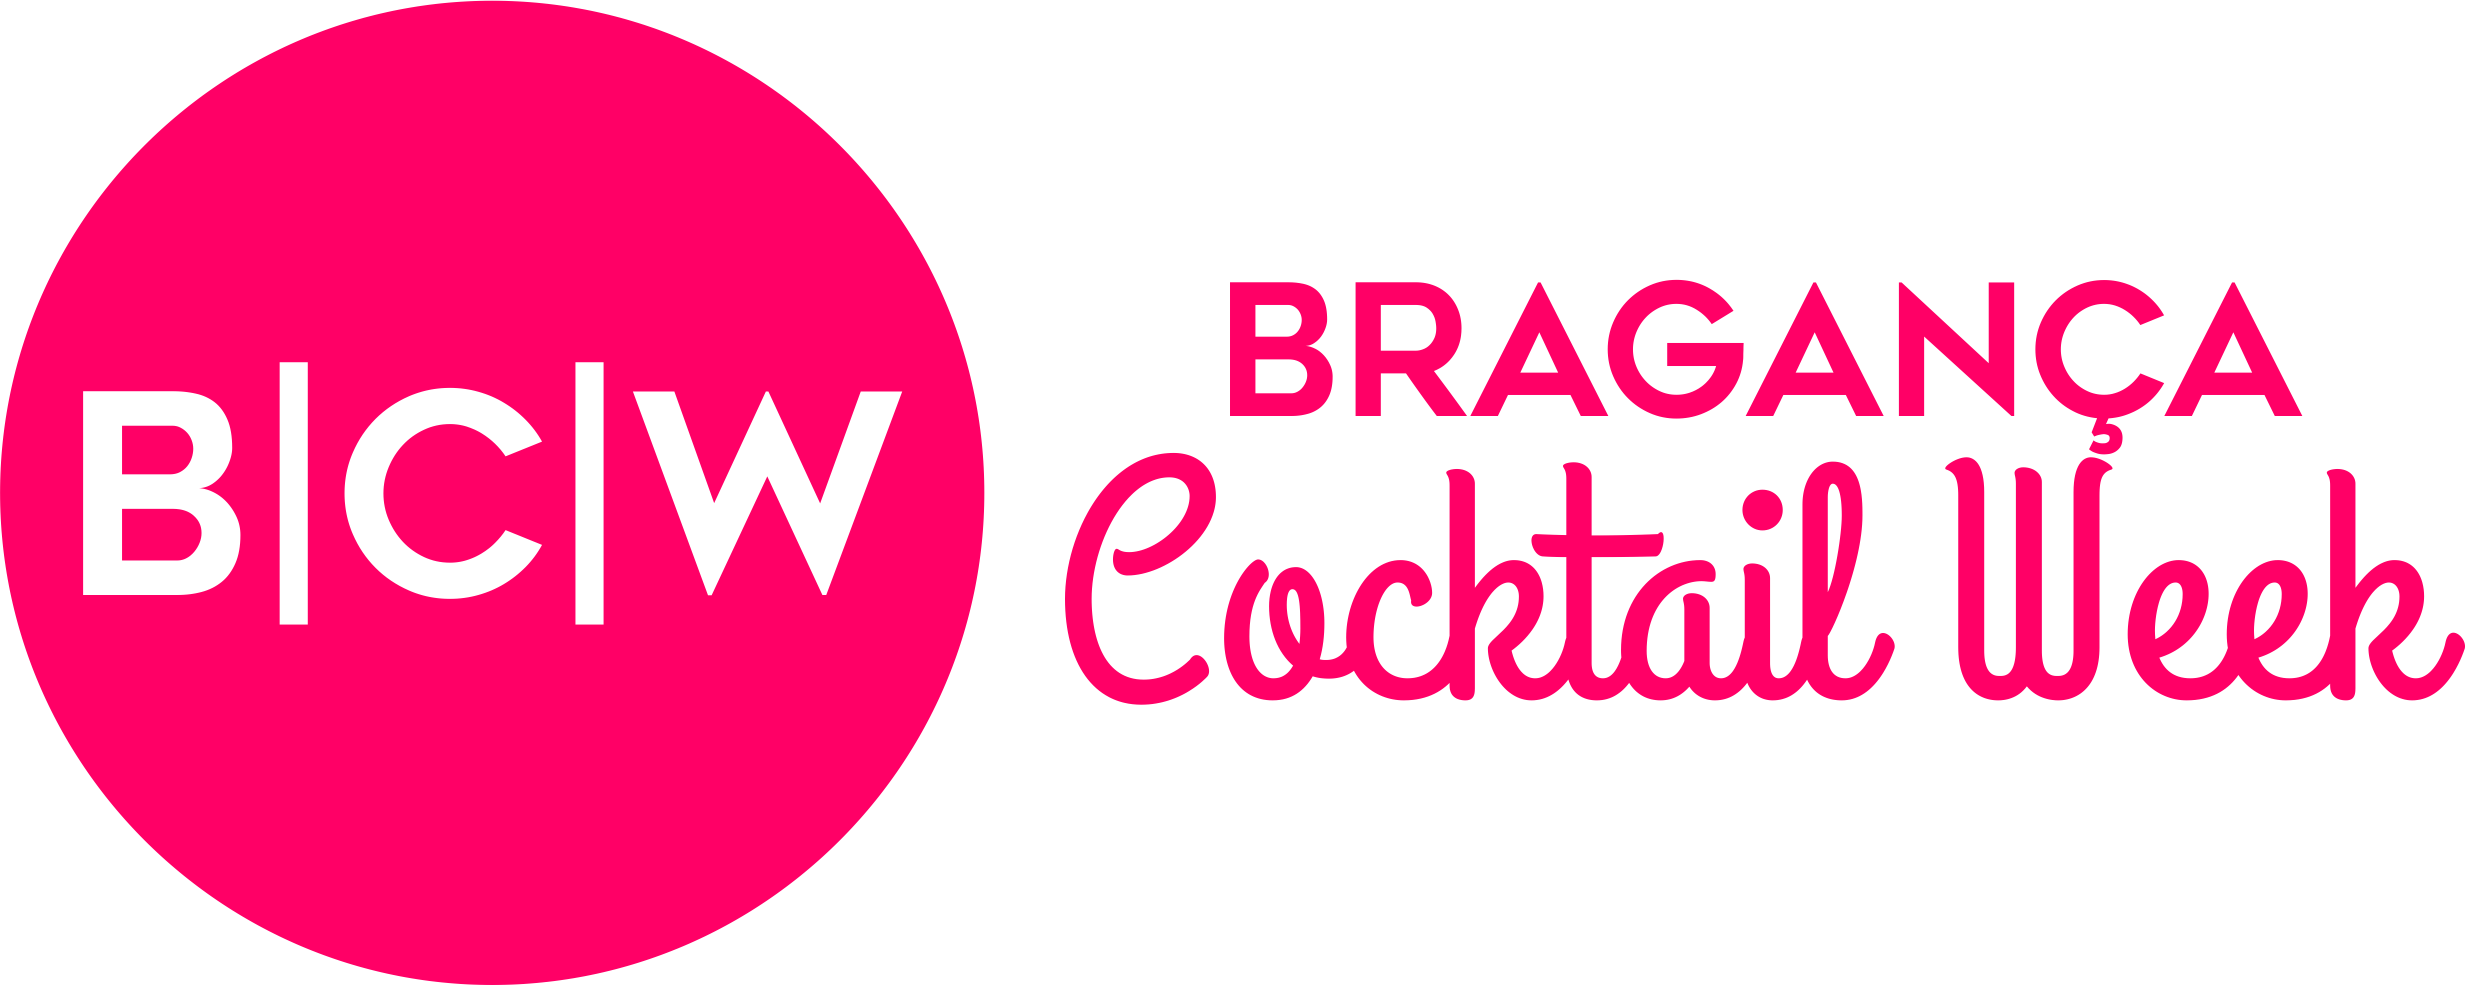 Bragança Cocktail Week